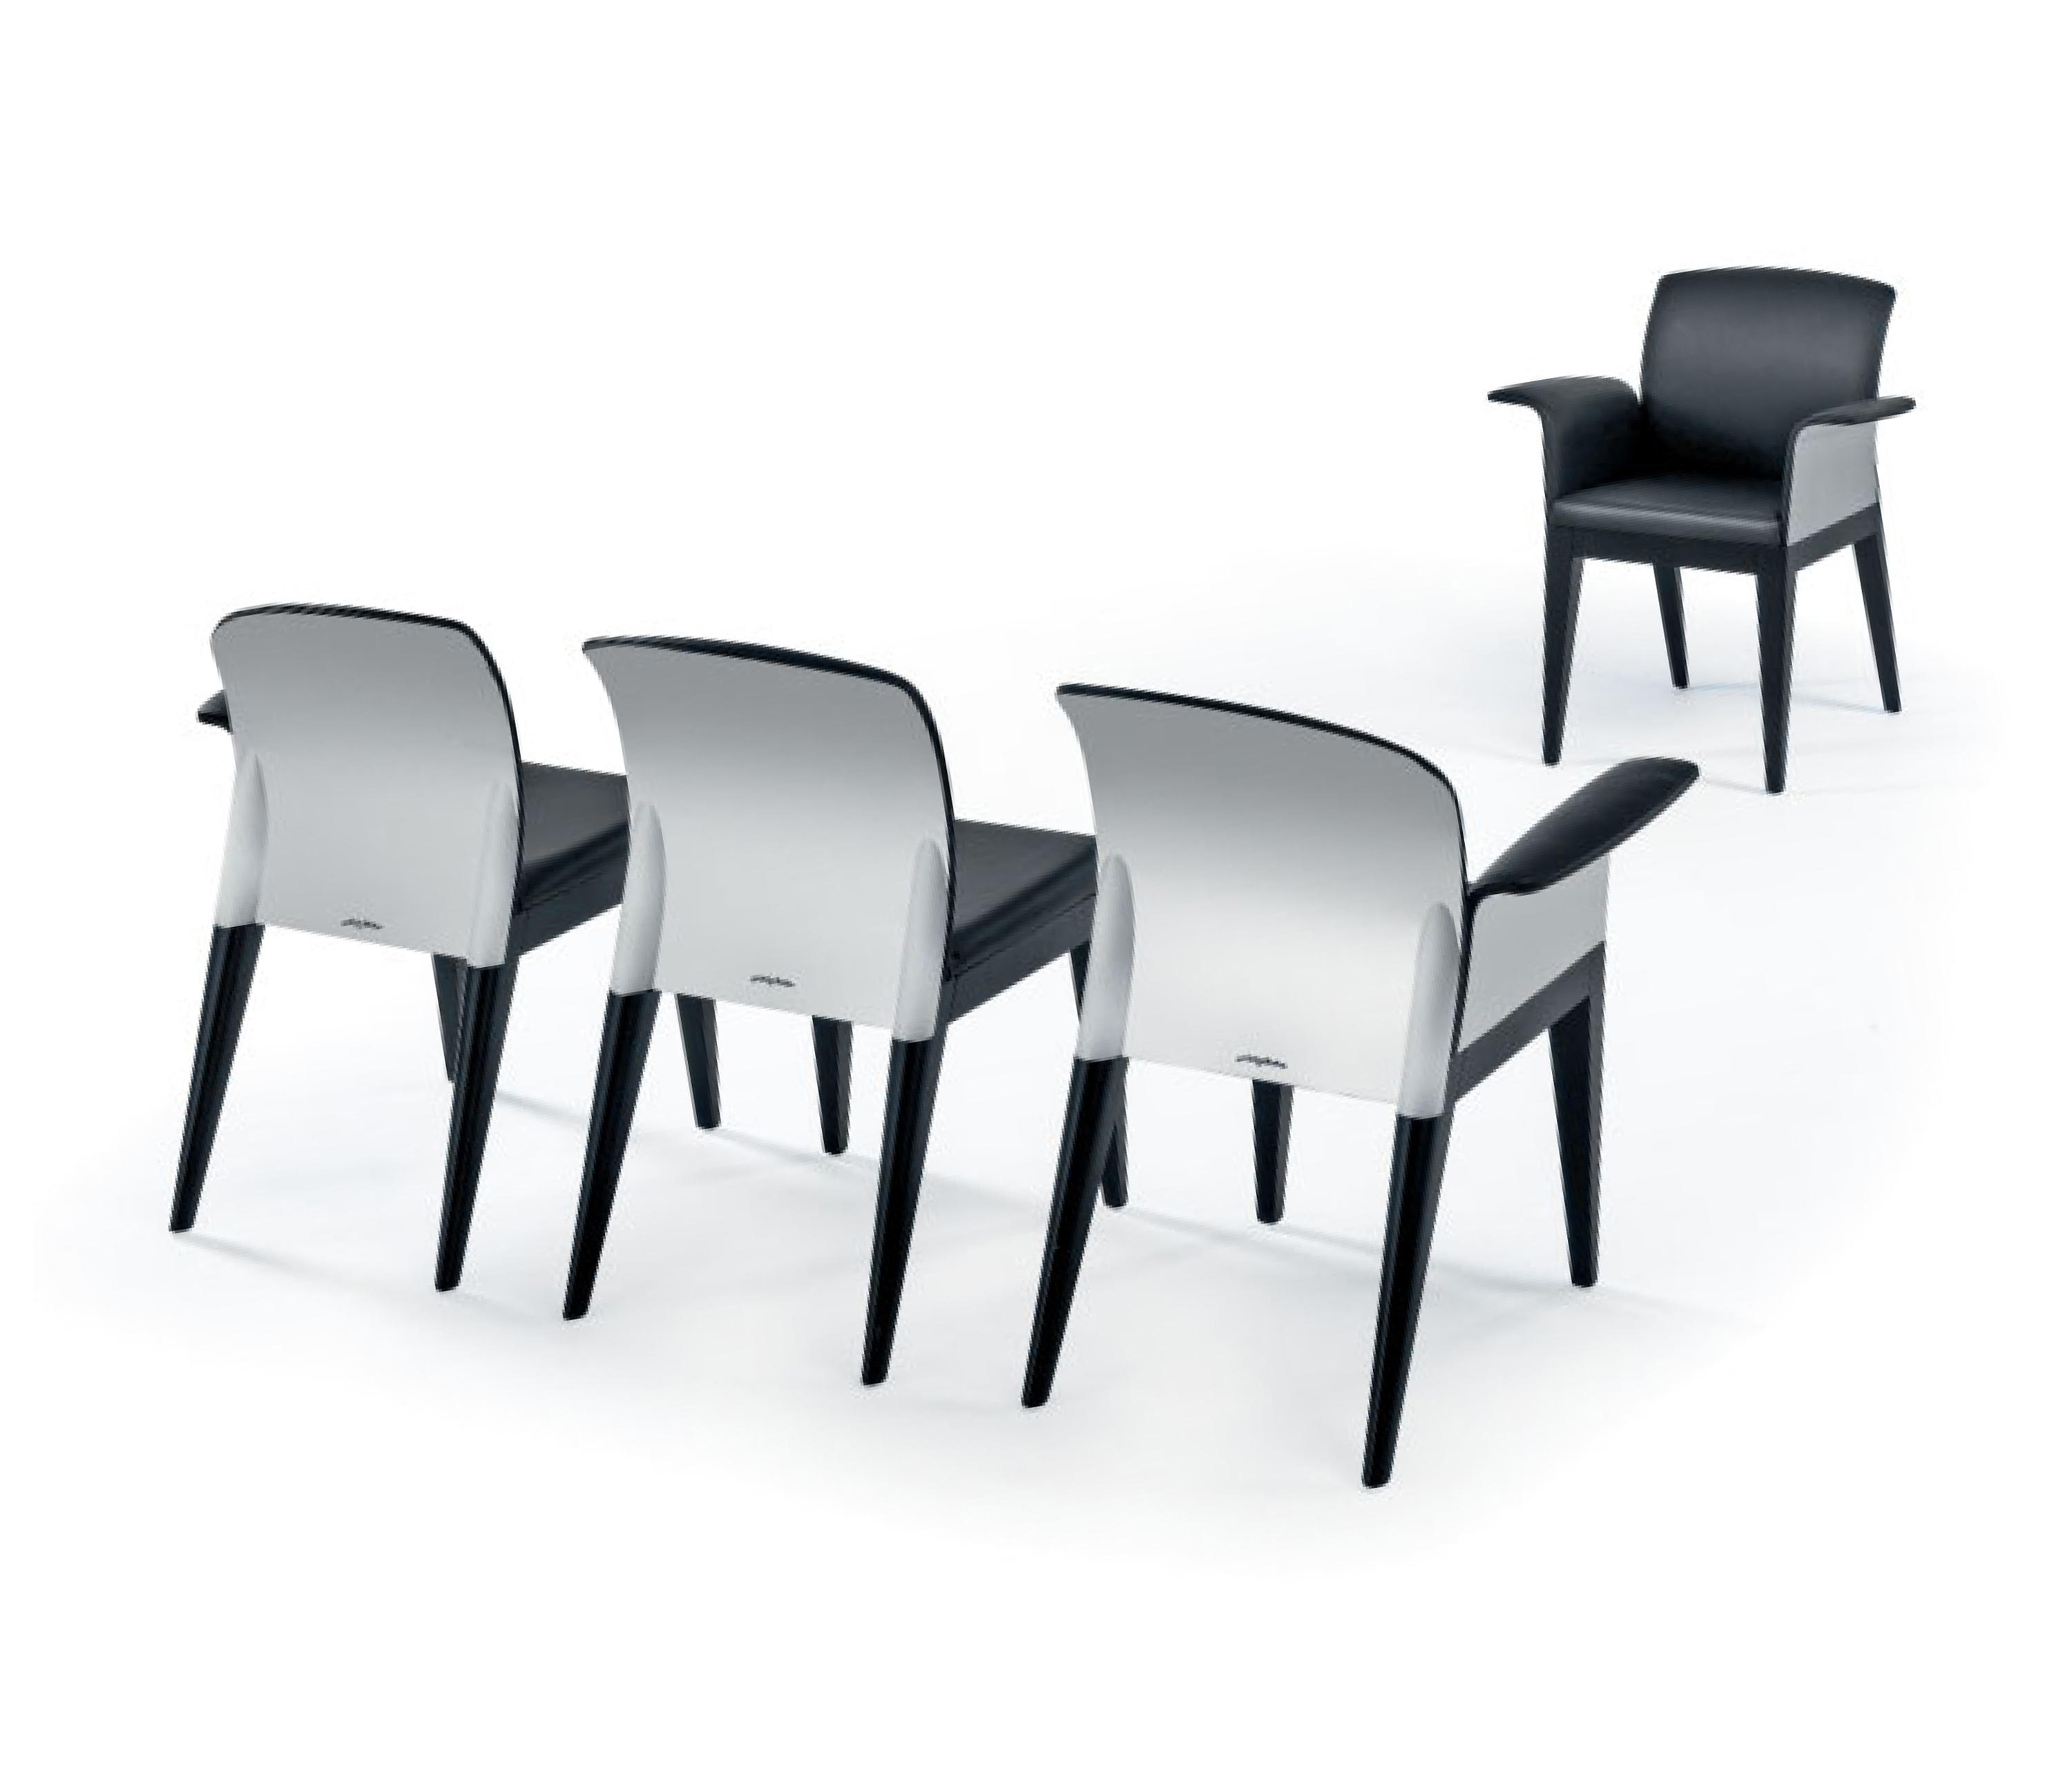 sc 1 st  Architonic & SIT CHAIR - Chairs from Reflex | Architonic